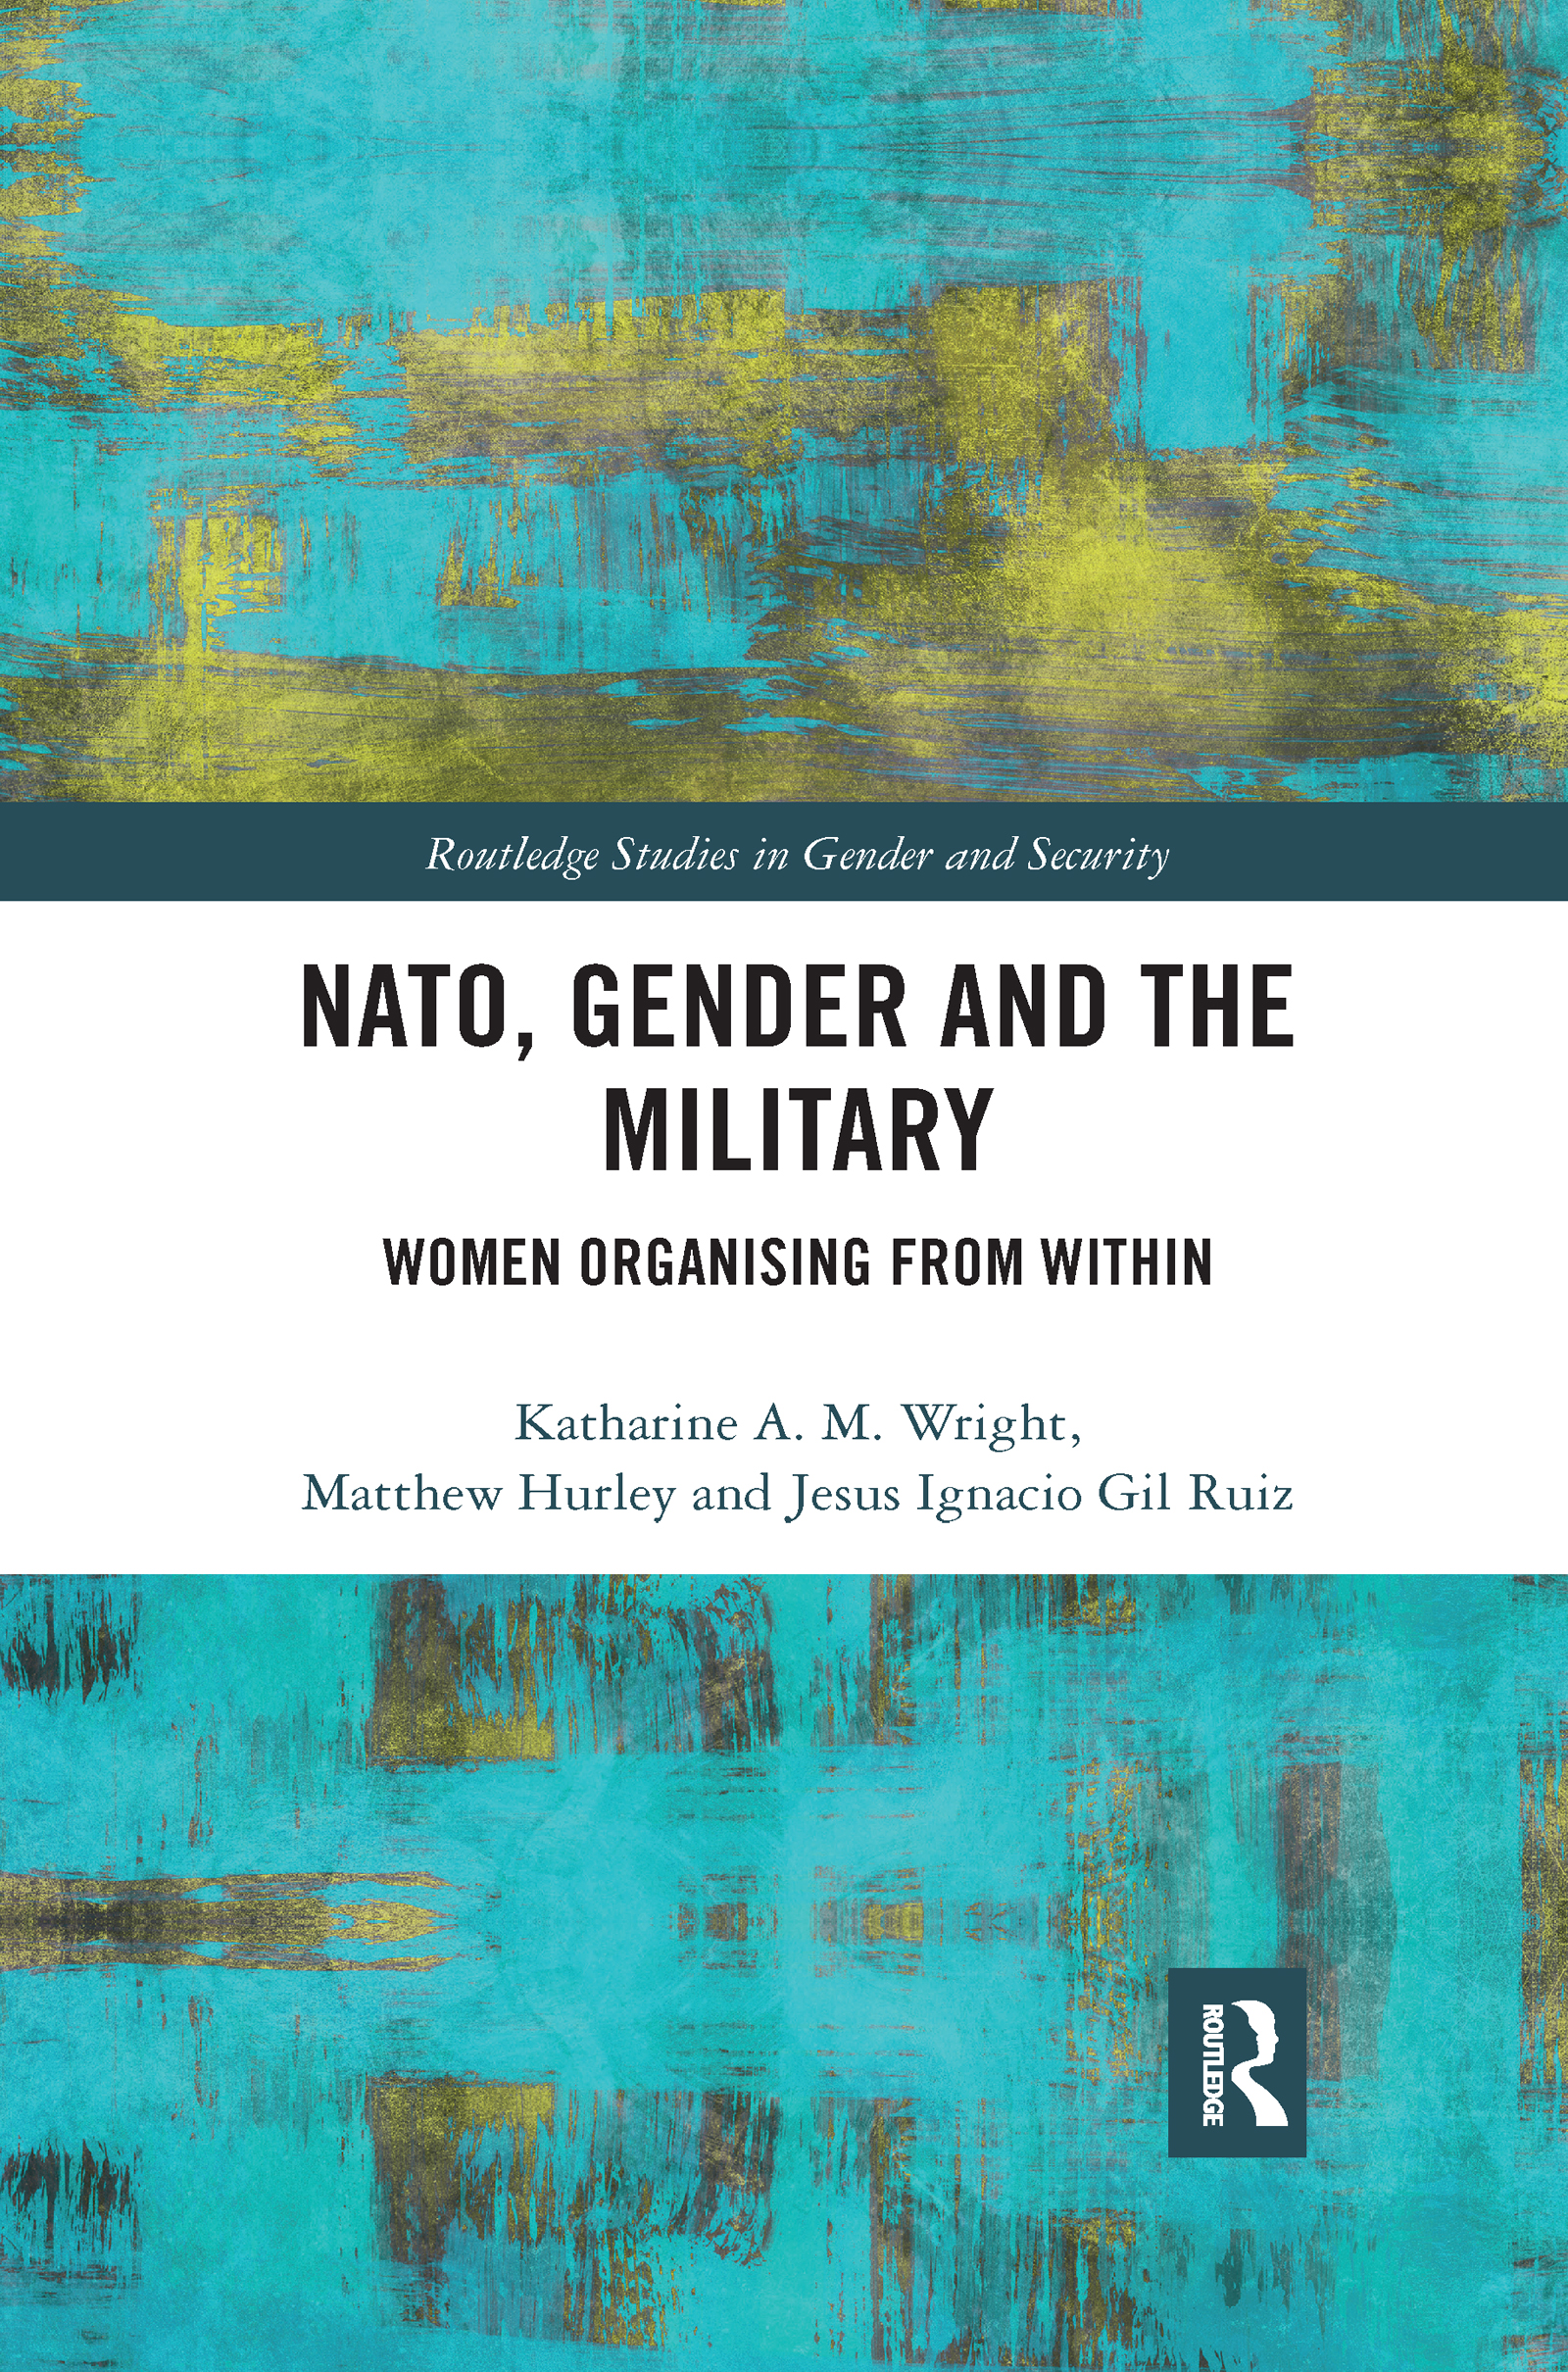 NATO, Gender and the Military